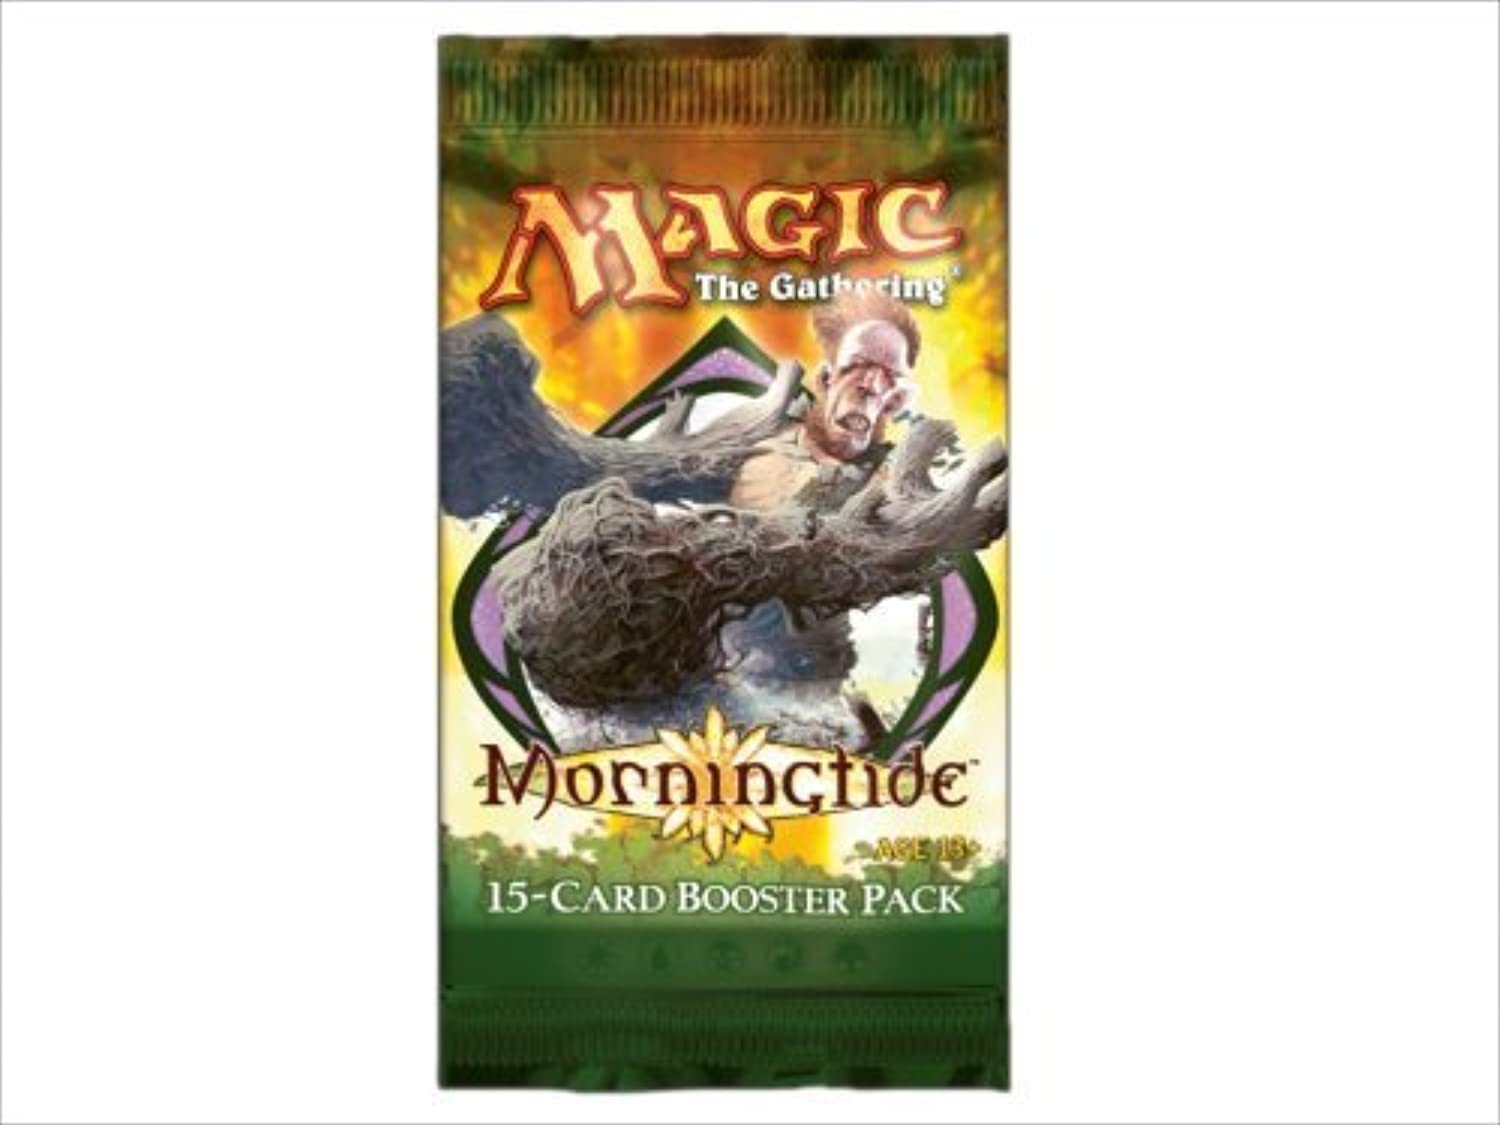 Magic the Gathering Morningtide Booster Pack 15 cards by Magic  the Gathering B00TTJWW90 Genialität    München